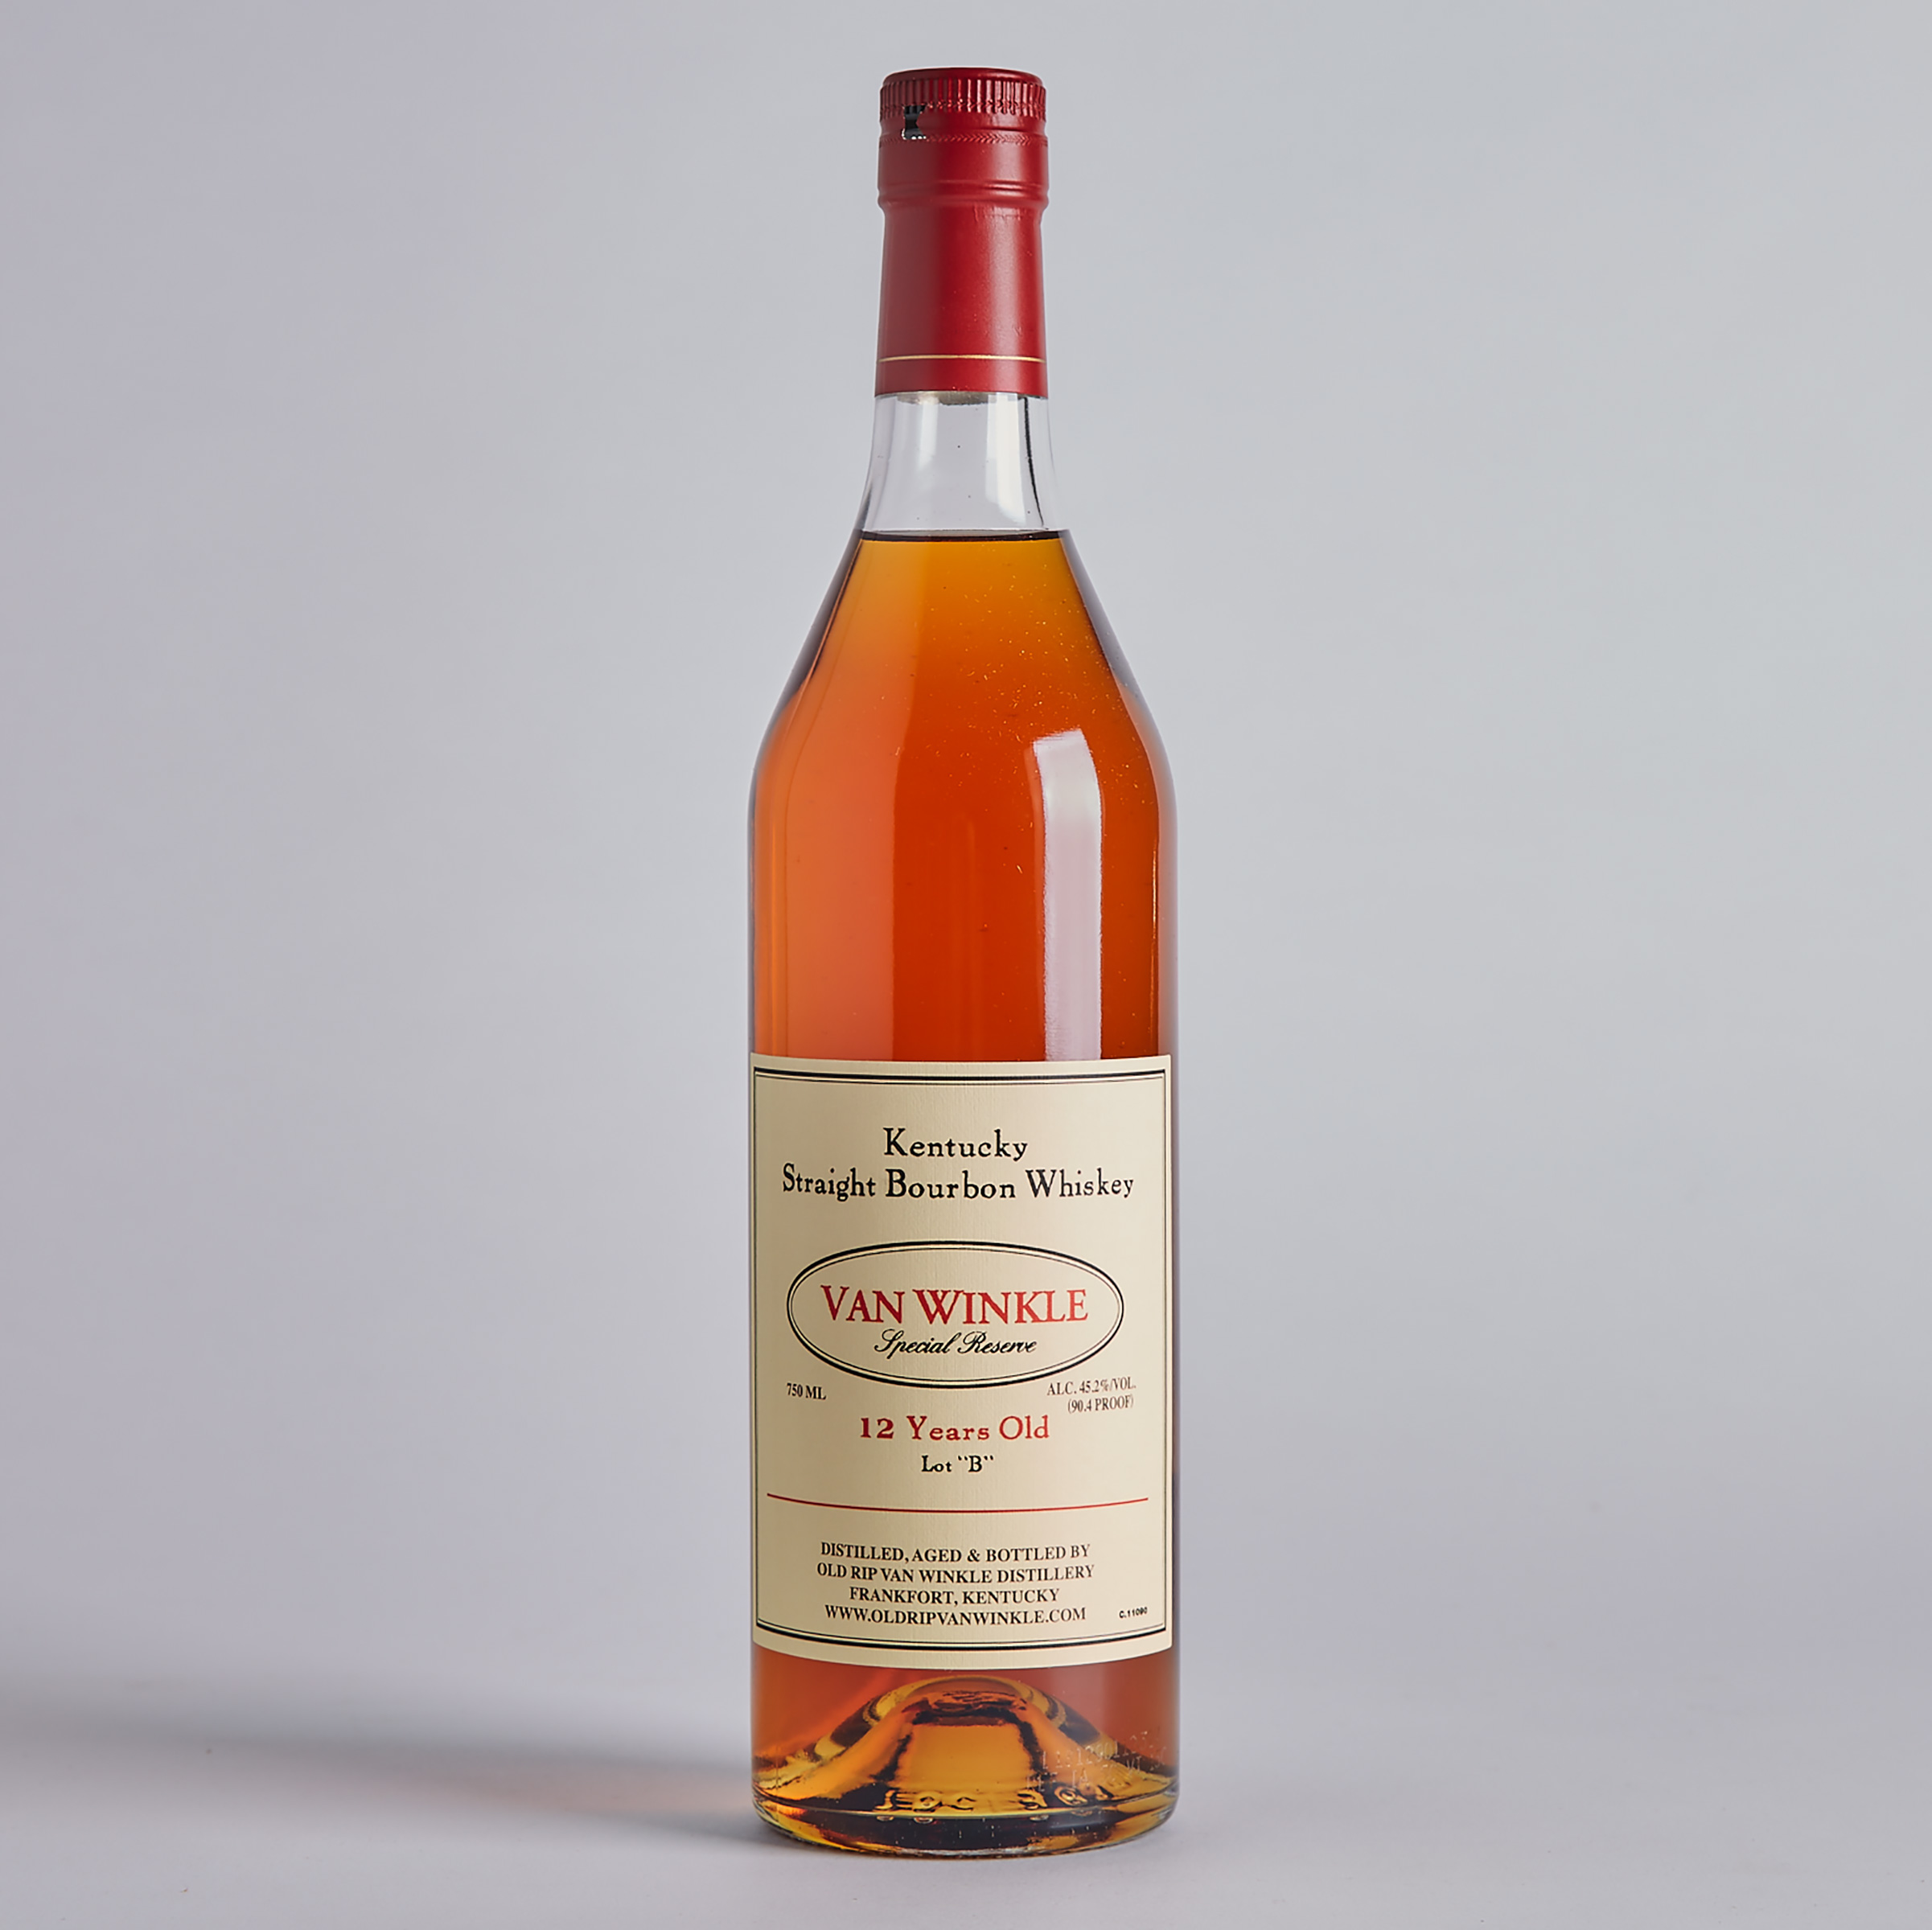 "VAN WINKLE SPECIAL RESERVE ""LOT 'B'"" KENTUCKY STRAIGHT BOURBON WHISKEY 12 YRS (ONE 750 ML)"